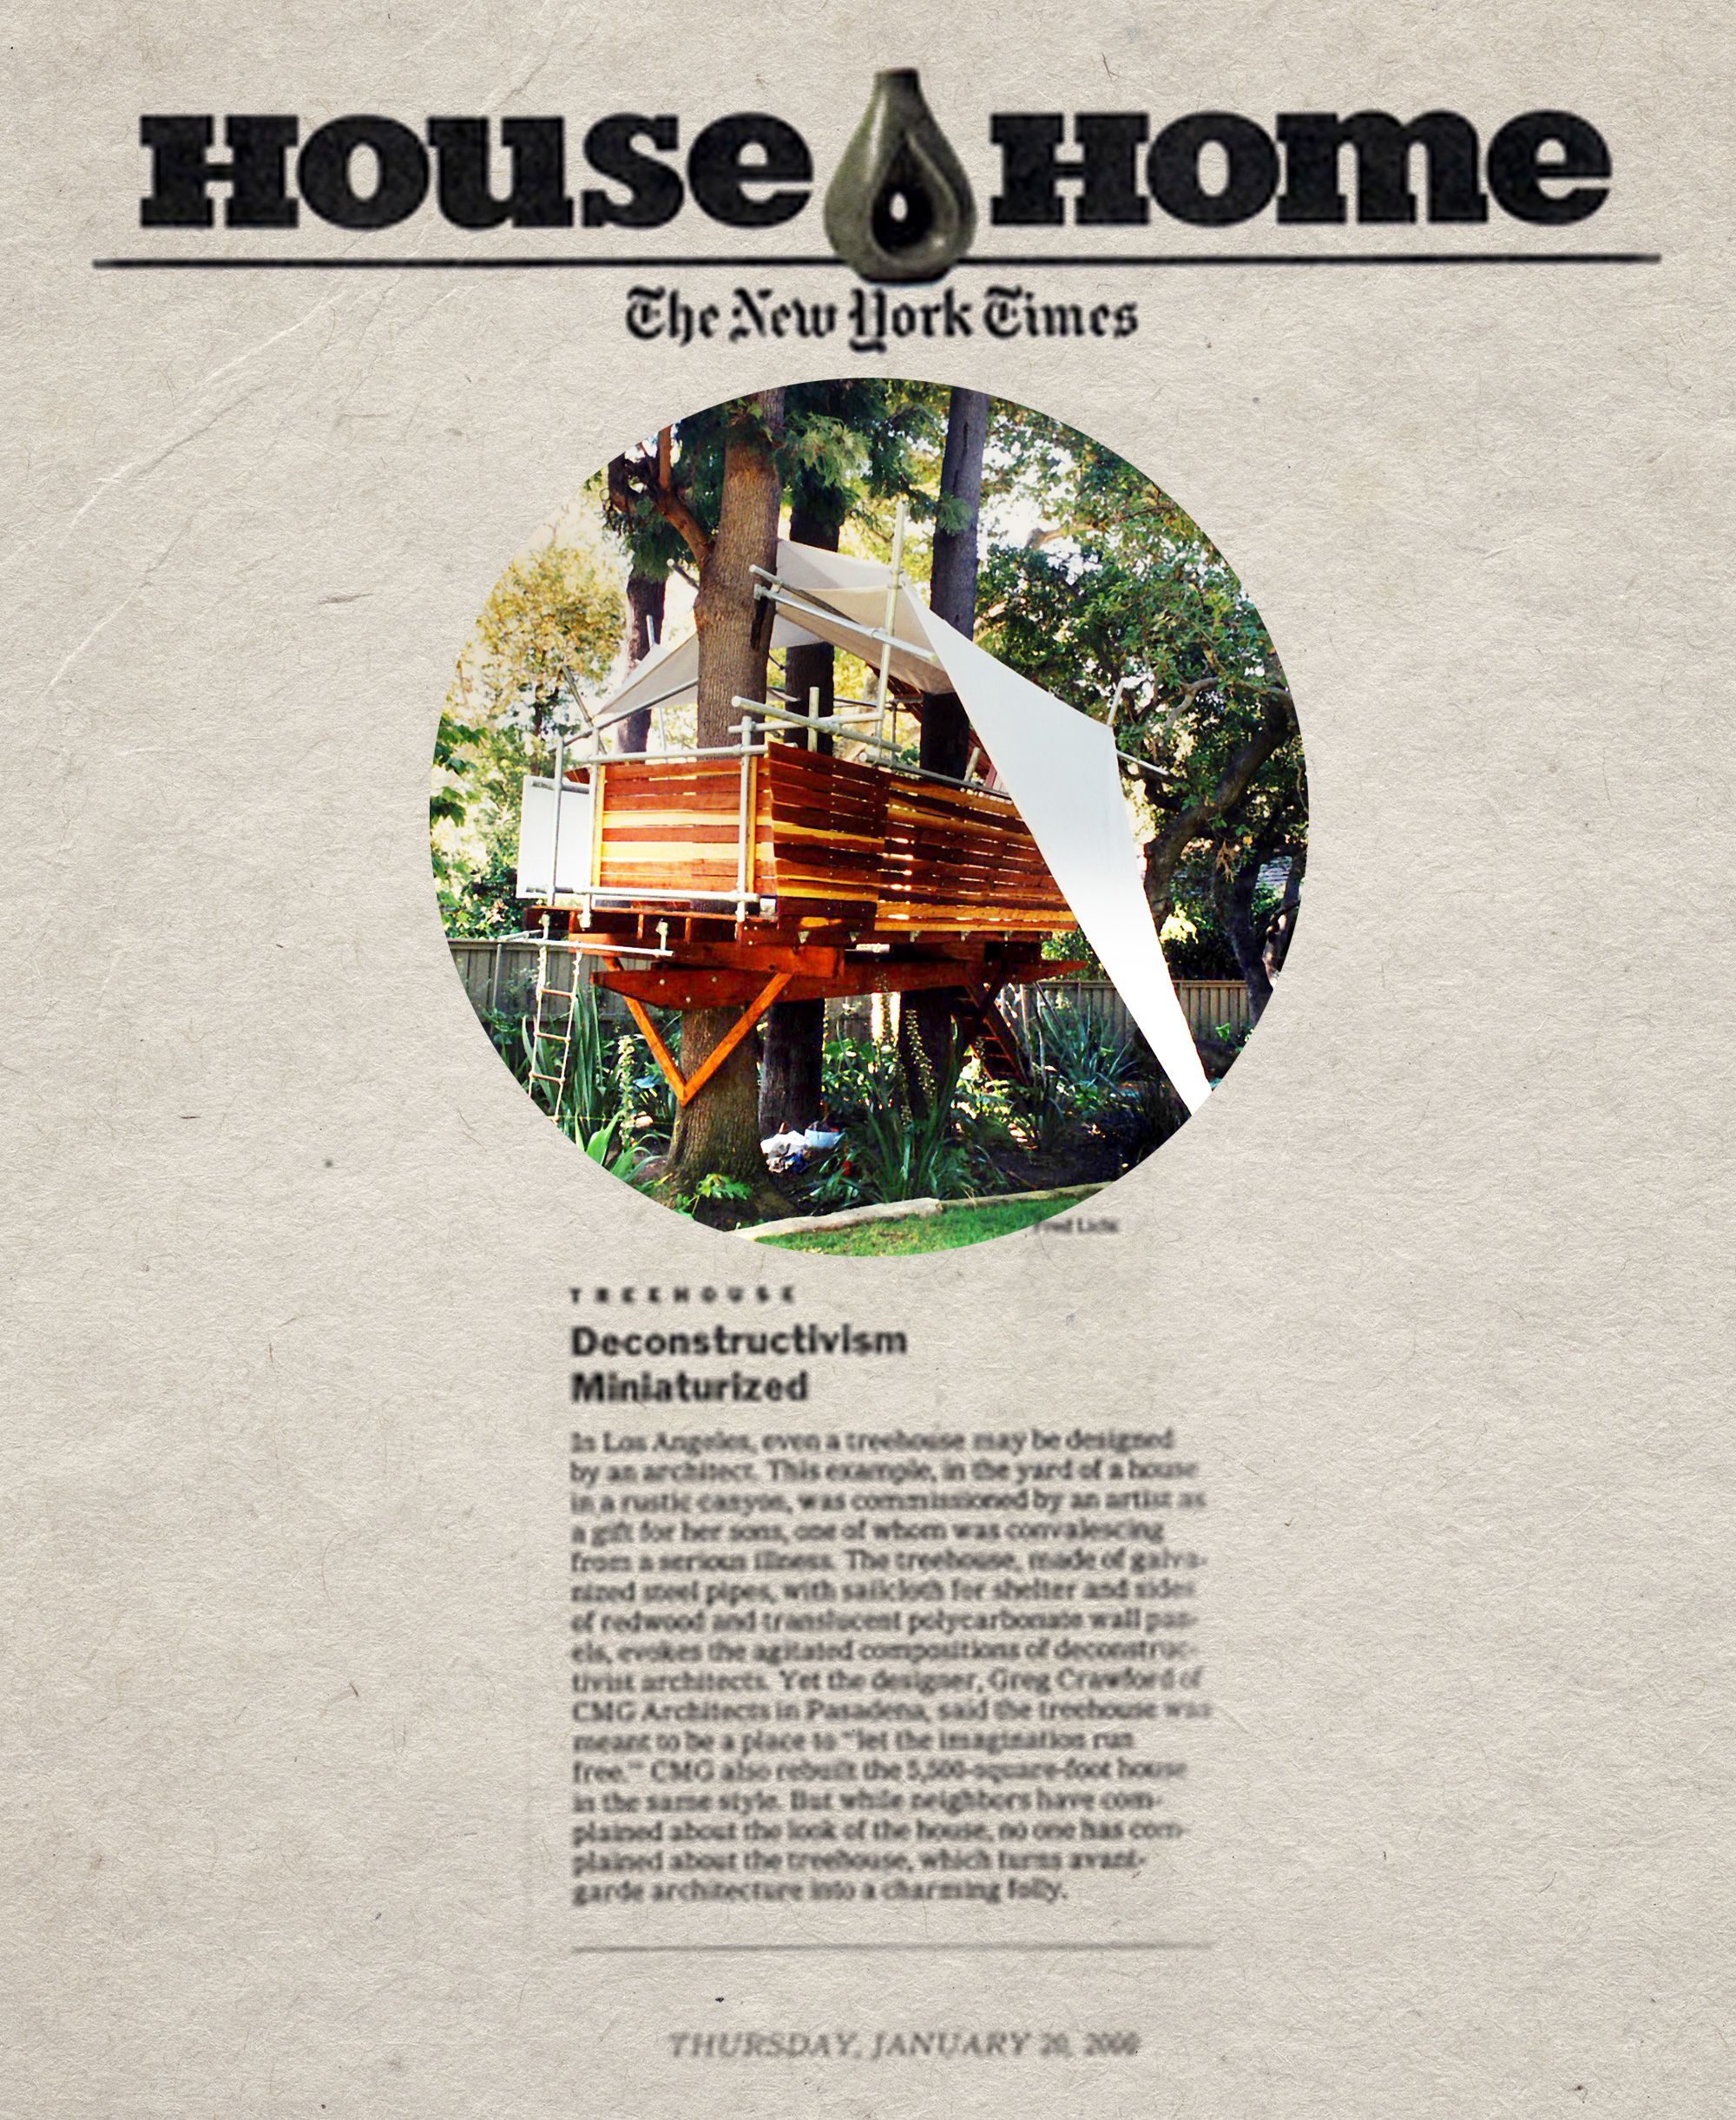 Deconstructivism Miniaturized - In Los Angeles, even a treehouse may be designed by an architect.